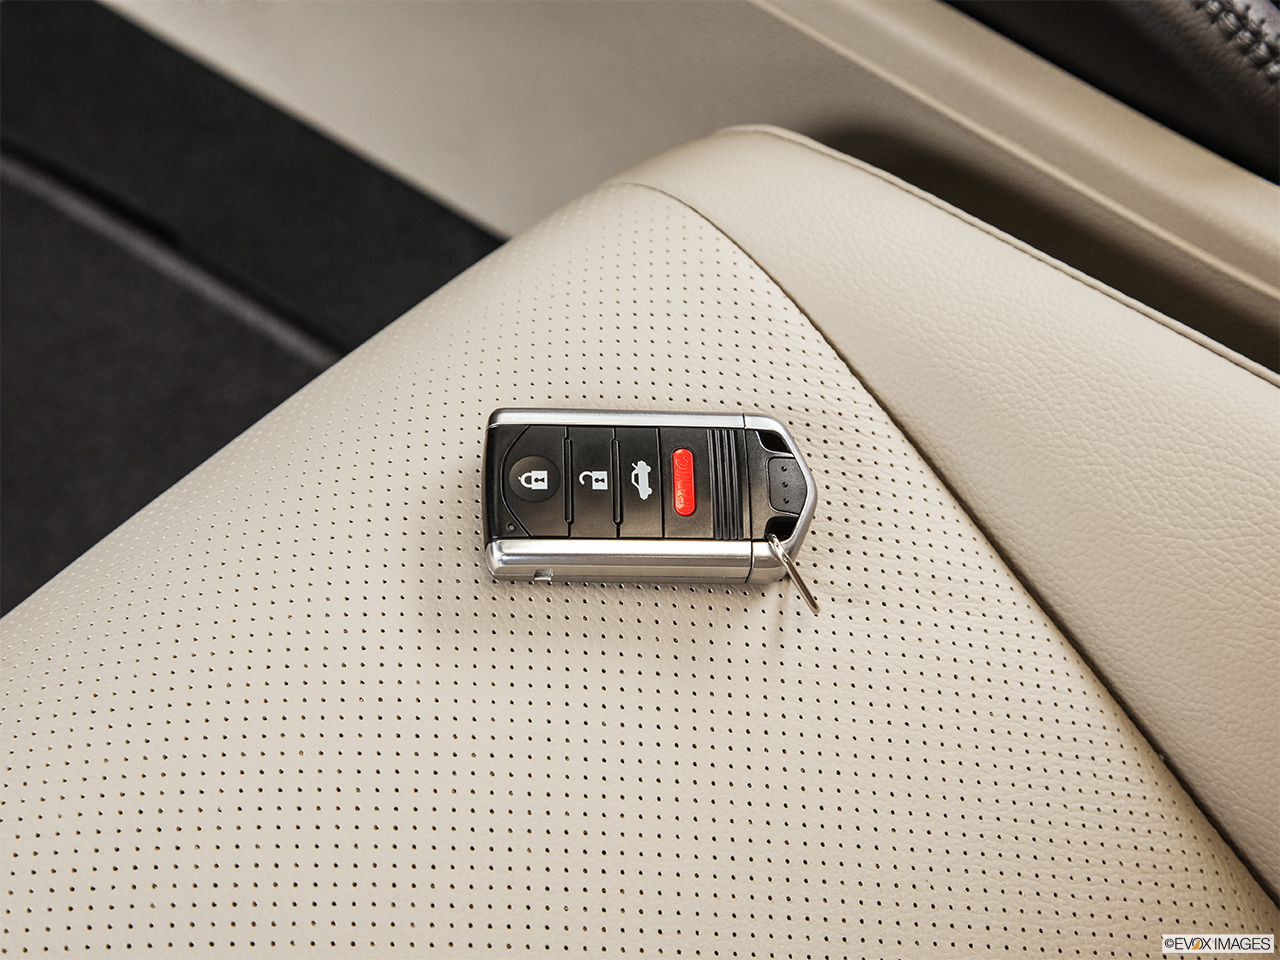 2014 Acura ILX Hybrid Base Key fob on driver's seat.